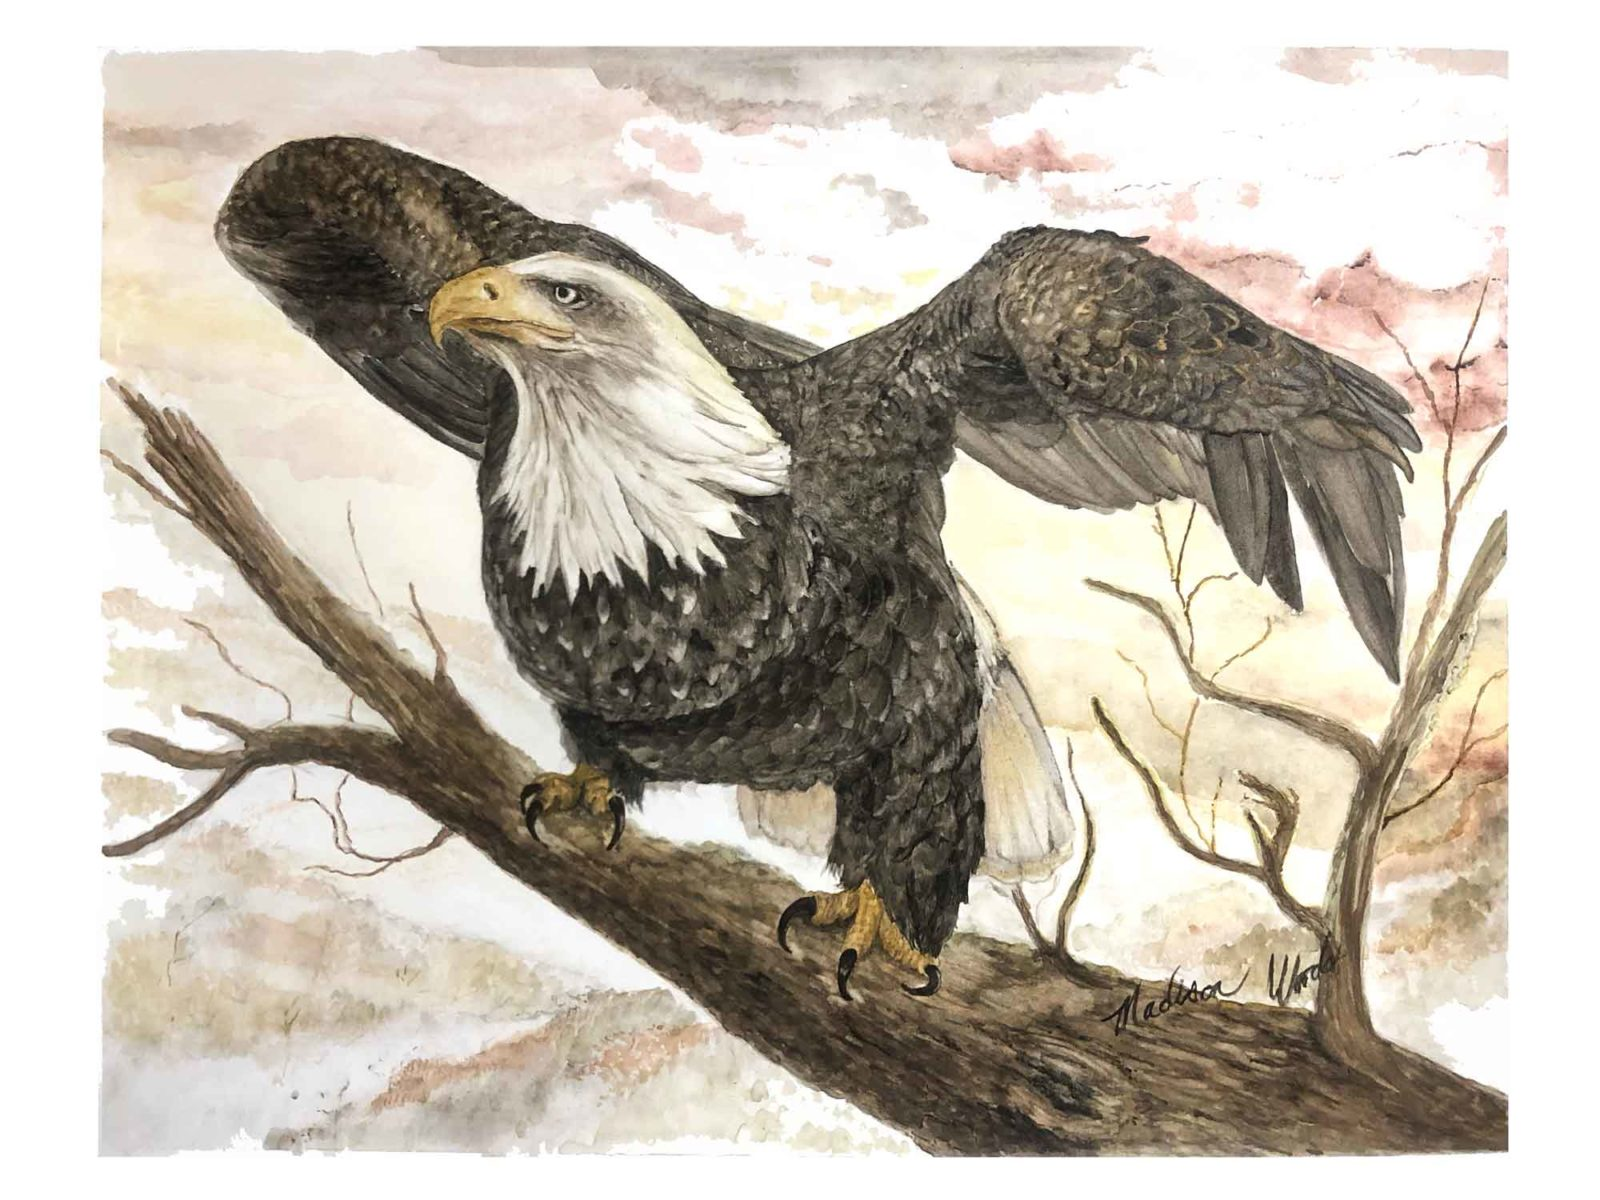 Original bald eagle painting by Madison Woods using Ozark pigments.